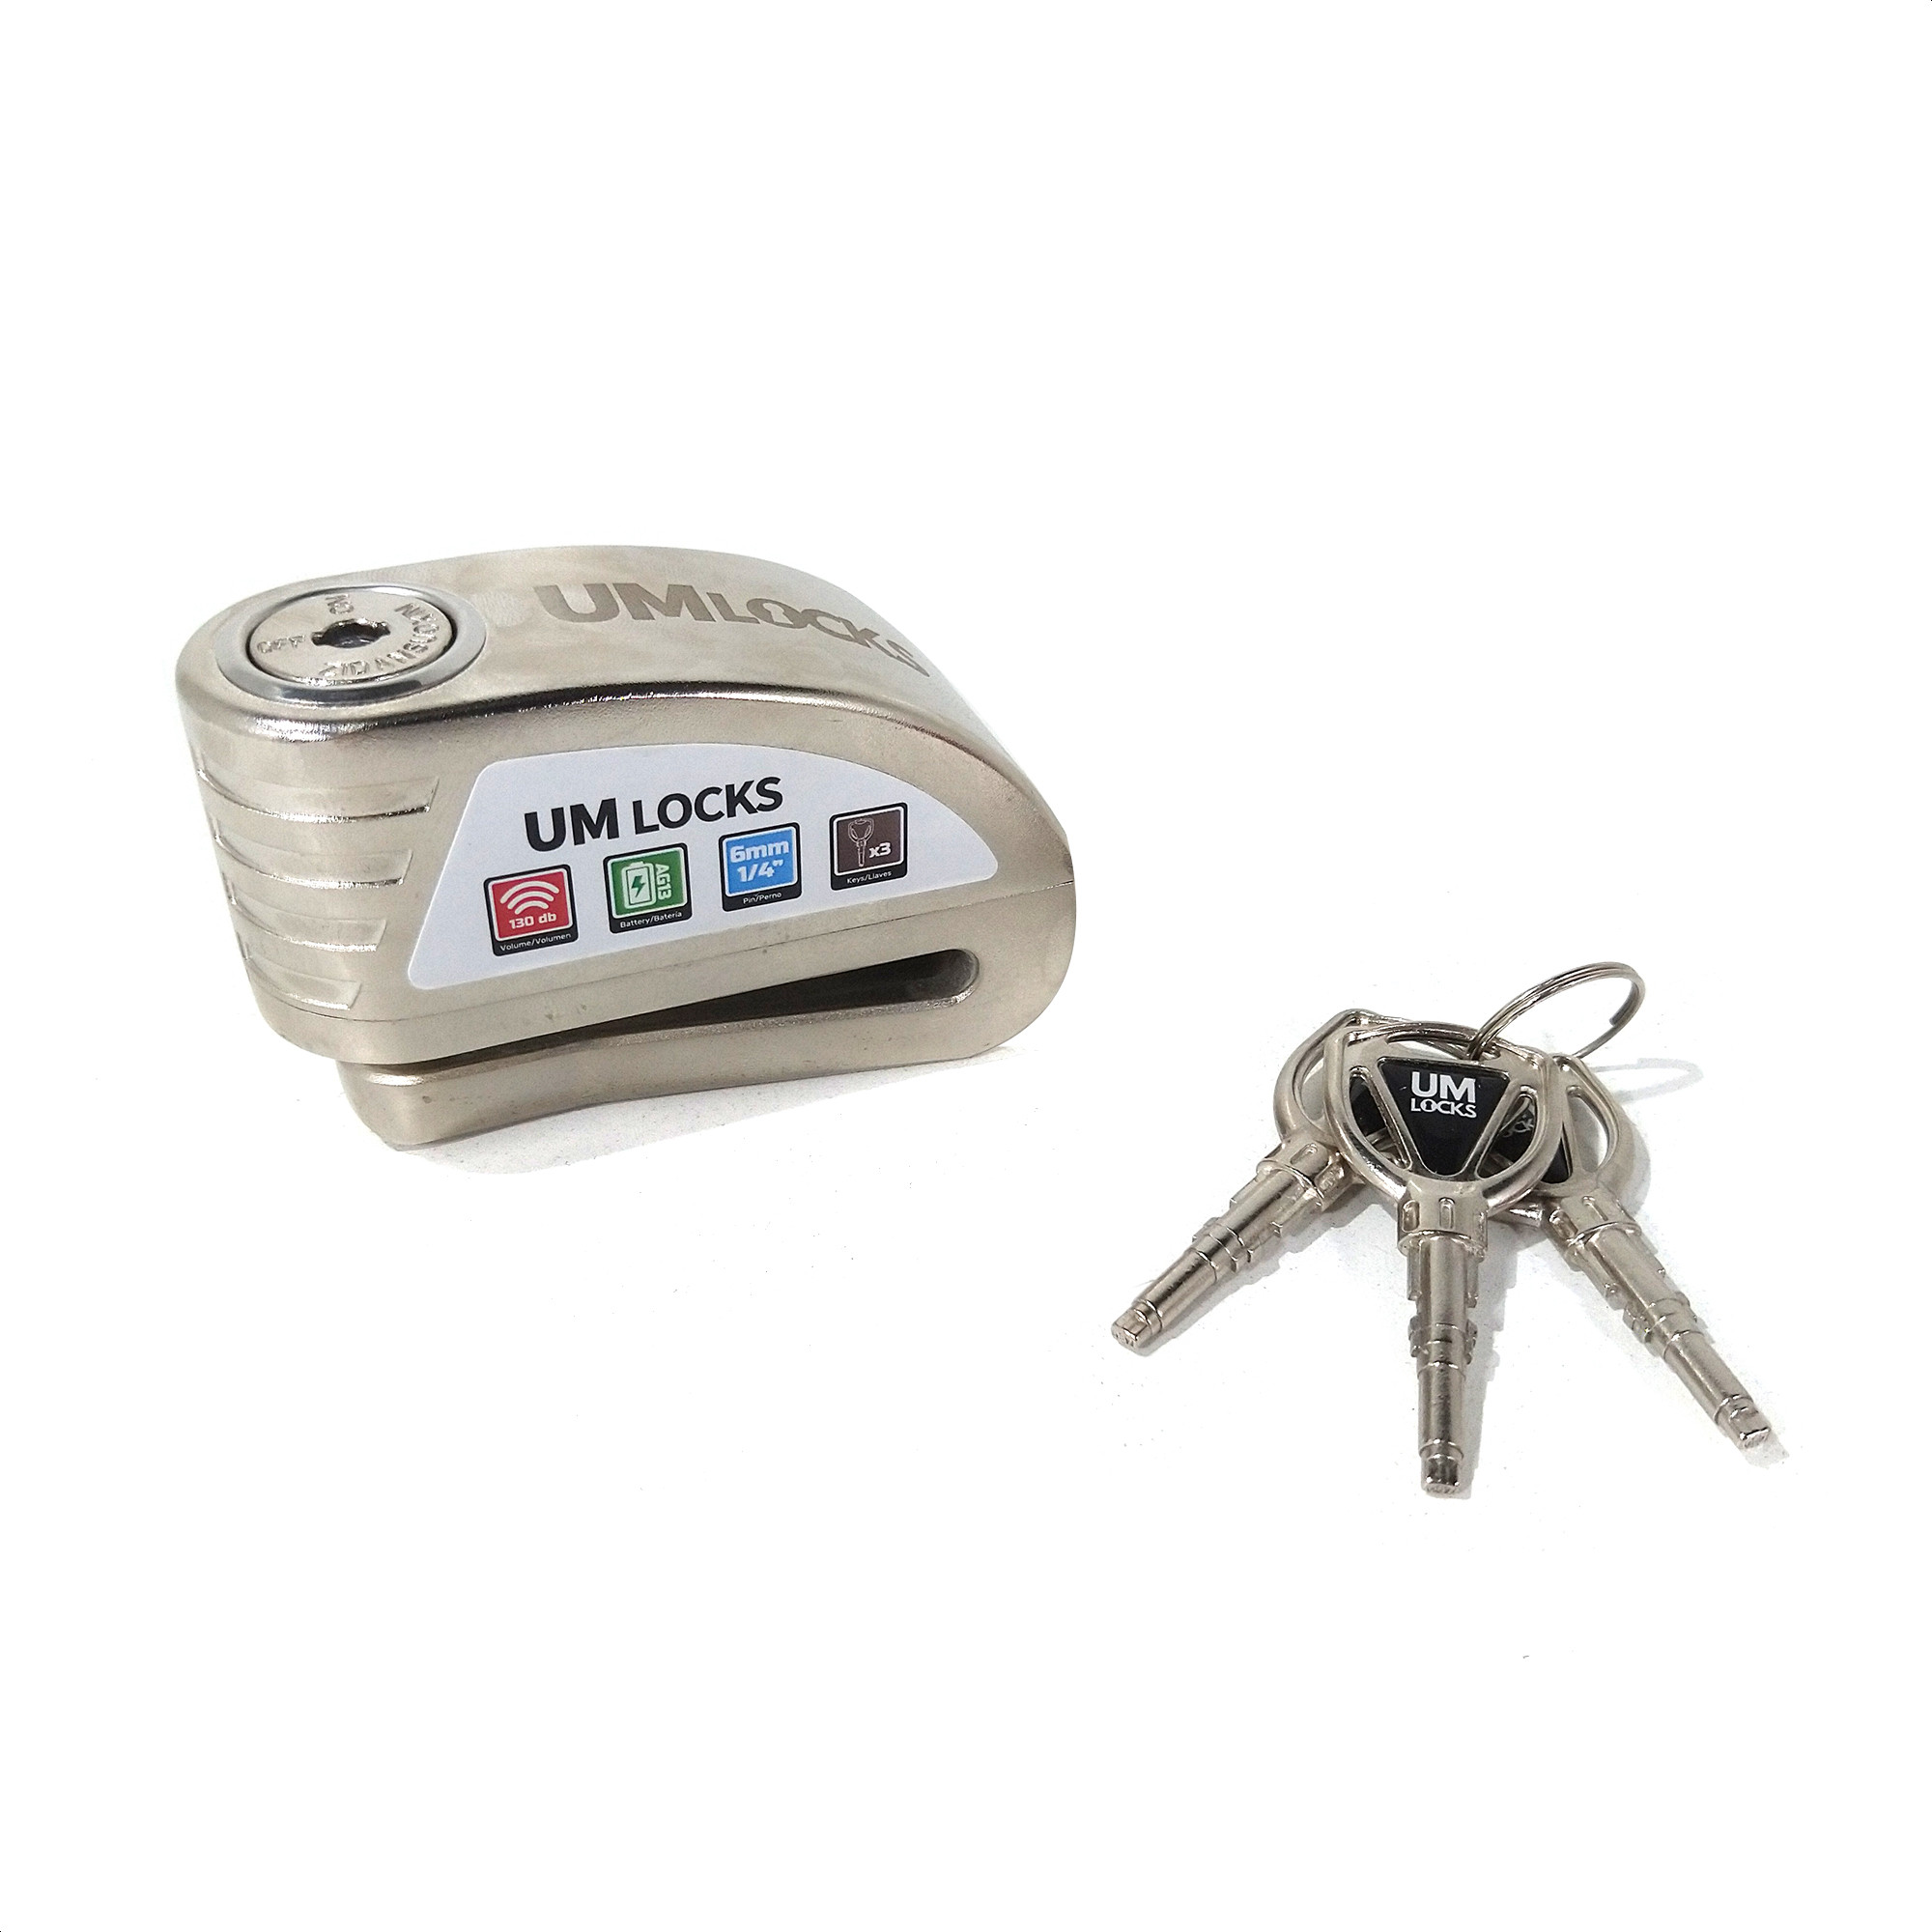 Traba Disco Um Locks Con Alarma Acero Perno 6mm Dx19